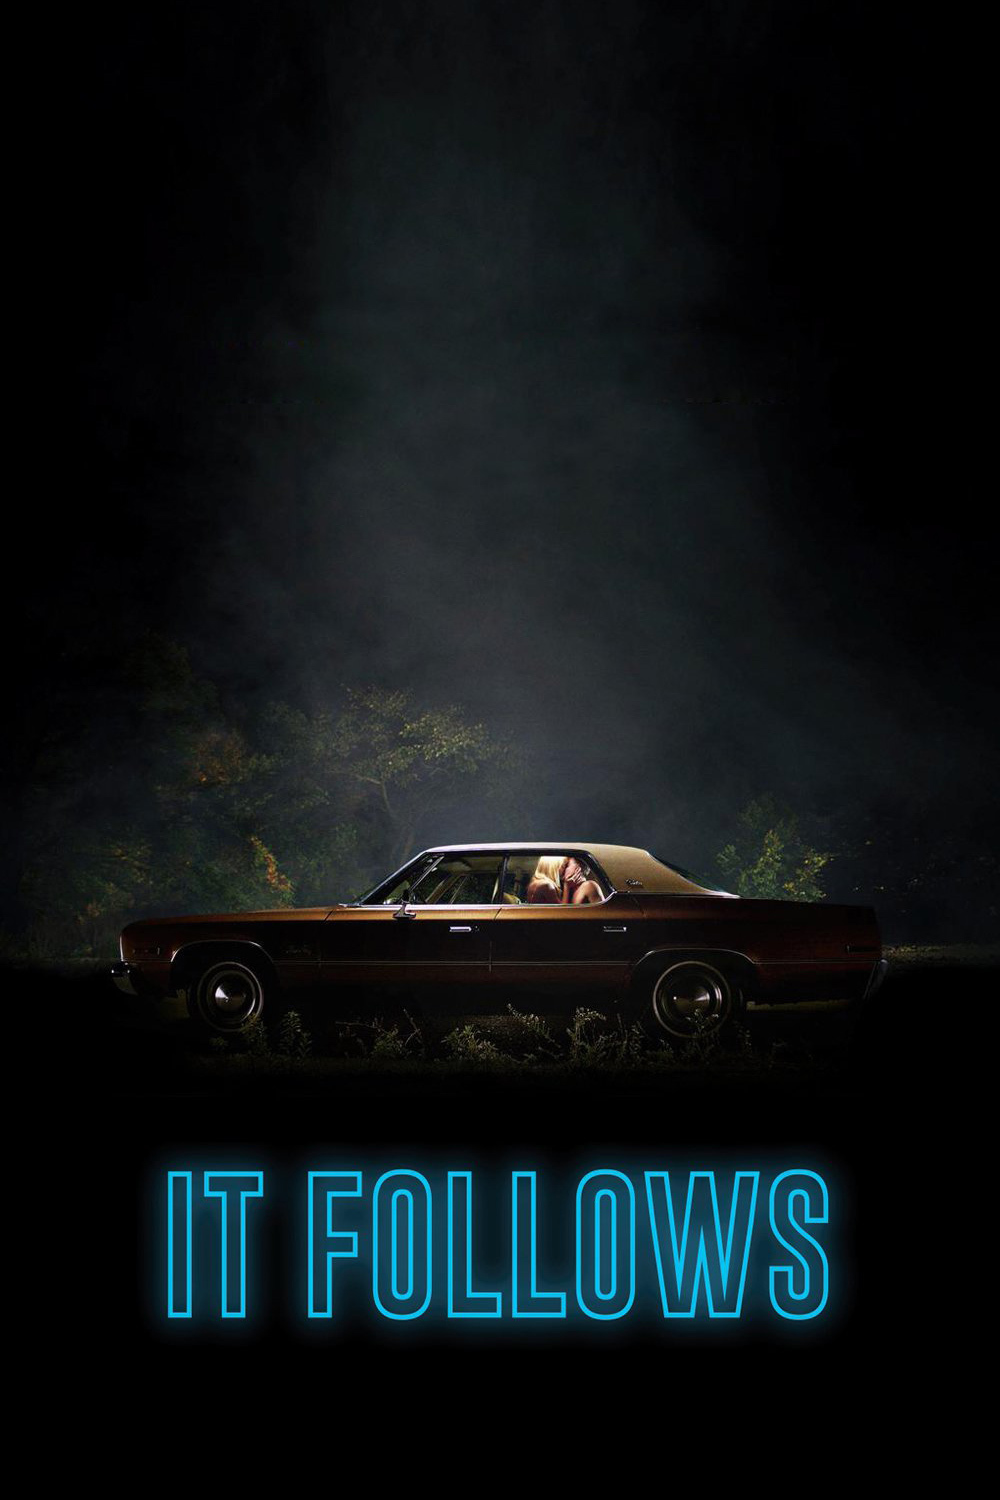 Poster for Detroit Strange Live Podcast Taping + IT FOLLOWS